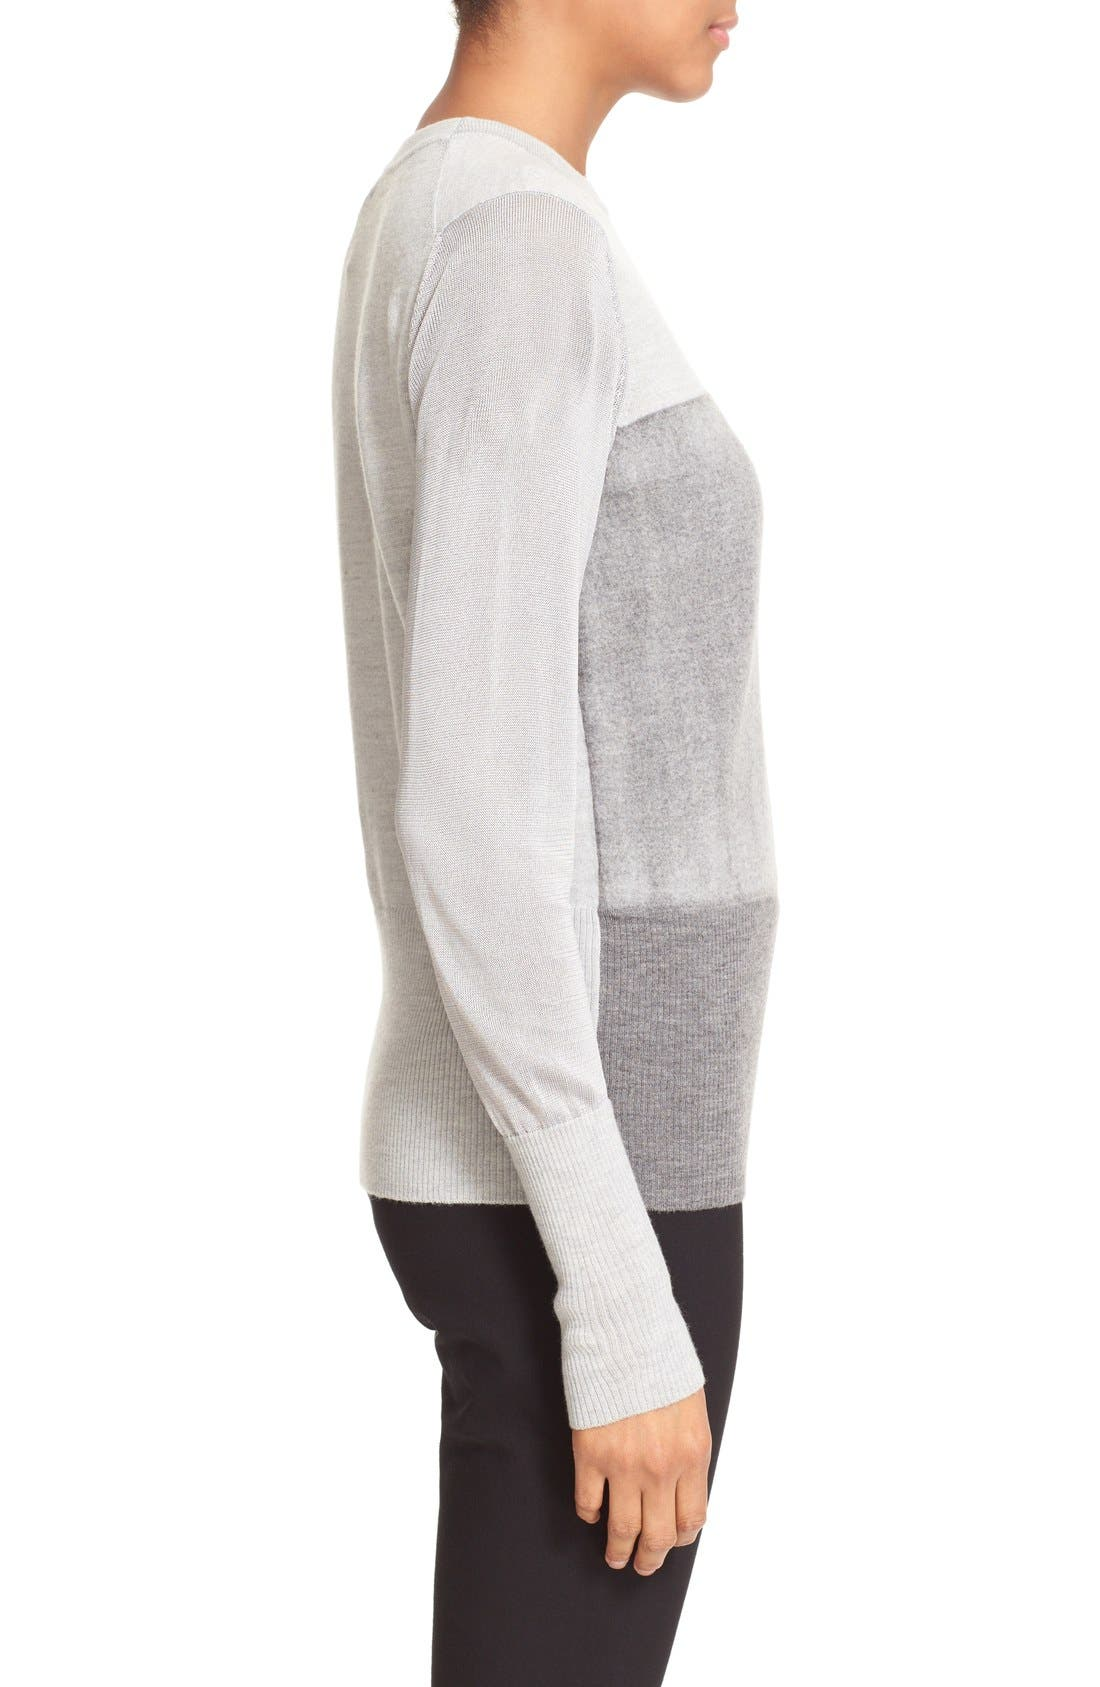 RAG & BONE,                             'Marissa' Merino Wool Crewneck Sweater,                             Alternate thumbnail 2, color,                             020